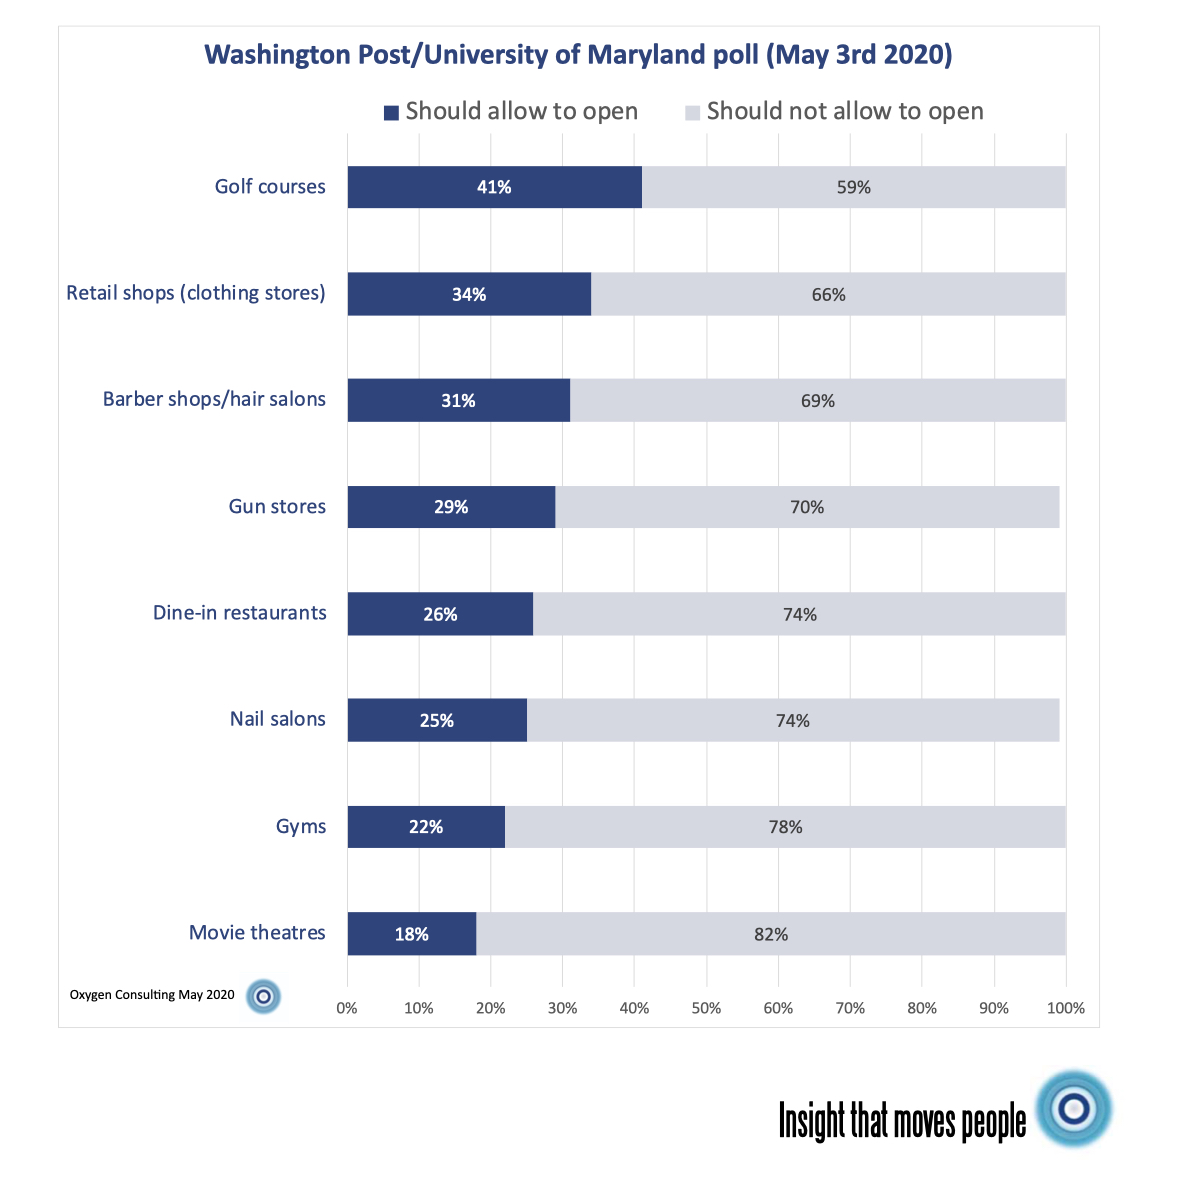 Results of Washington Post/University of Maryland survey May 2020 showing 78% of Americans think gyms should be allowed to reopen just yet.